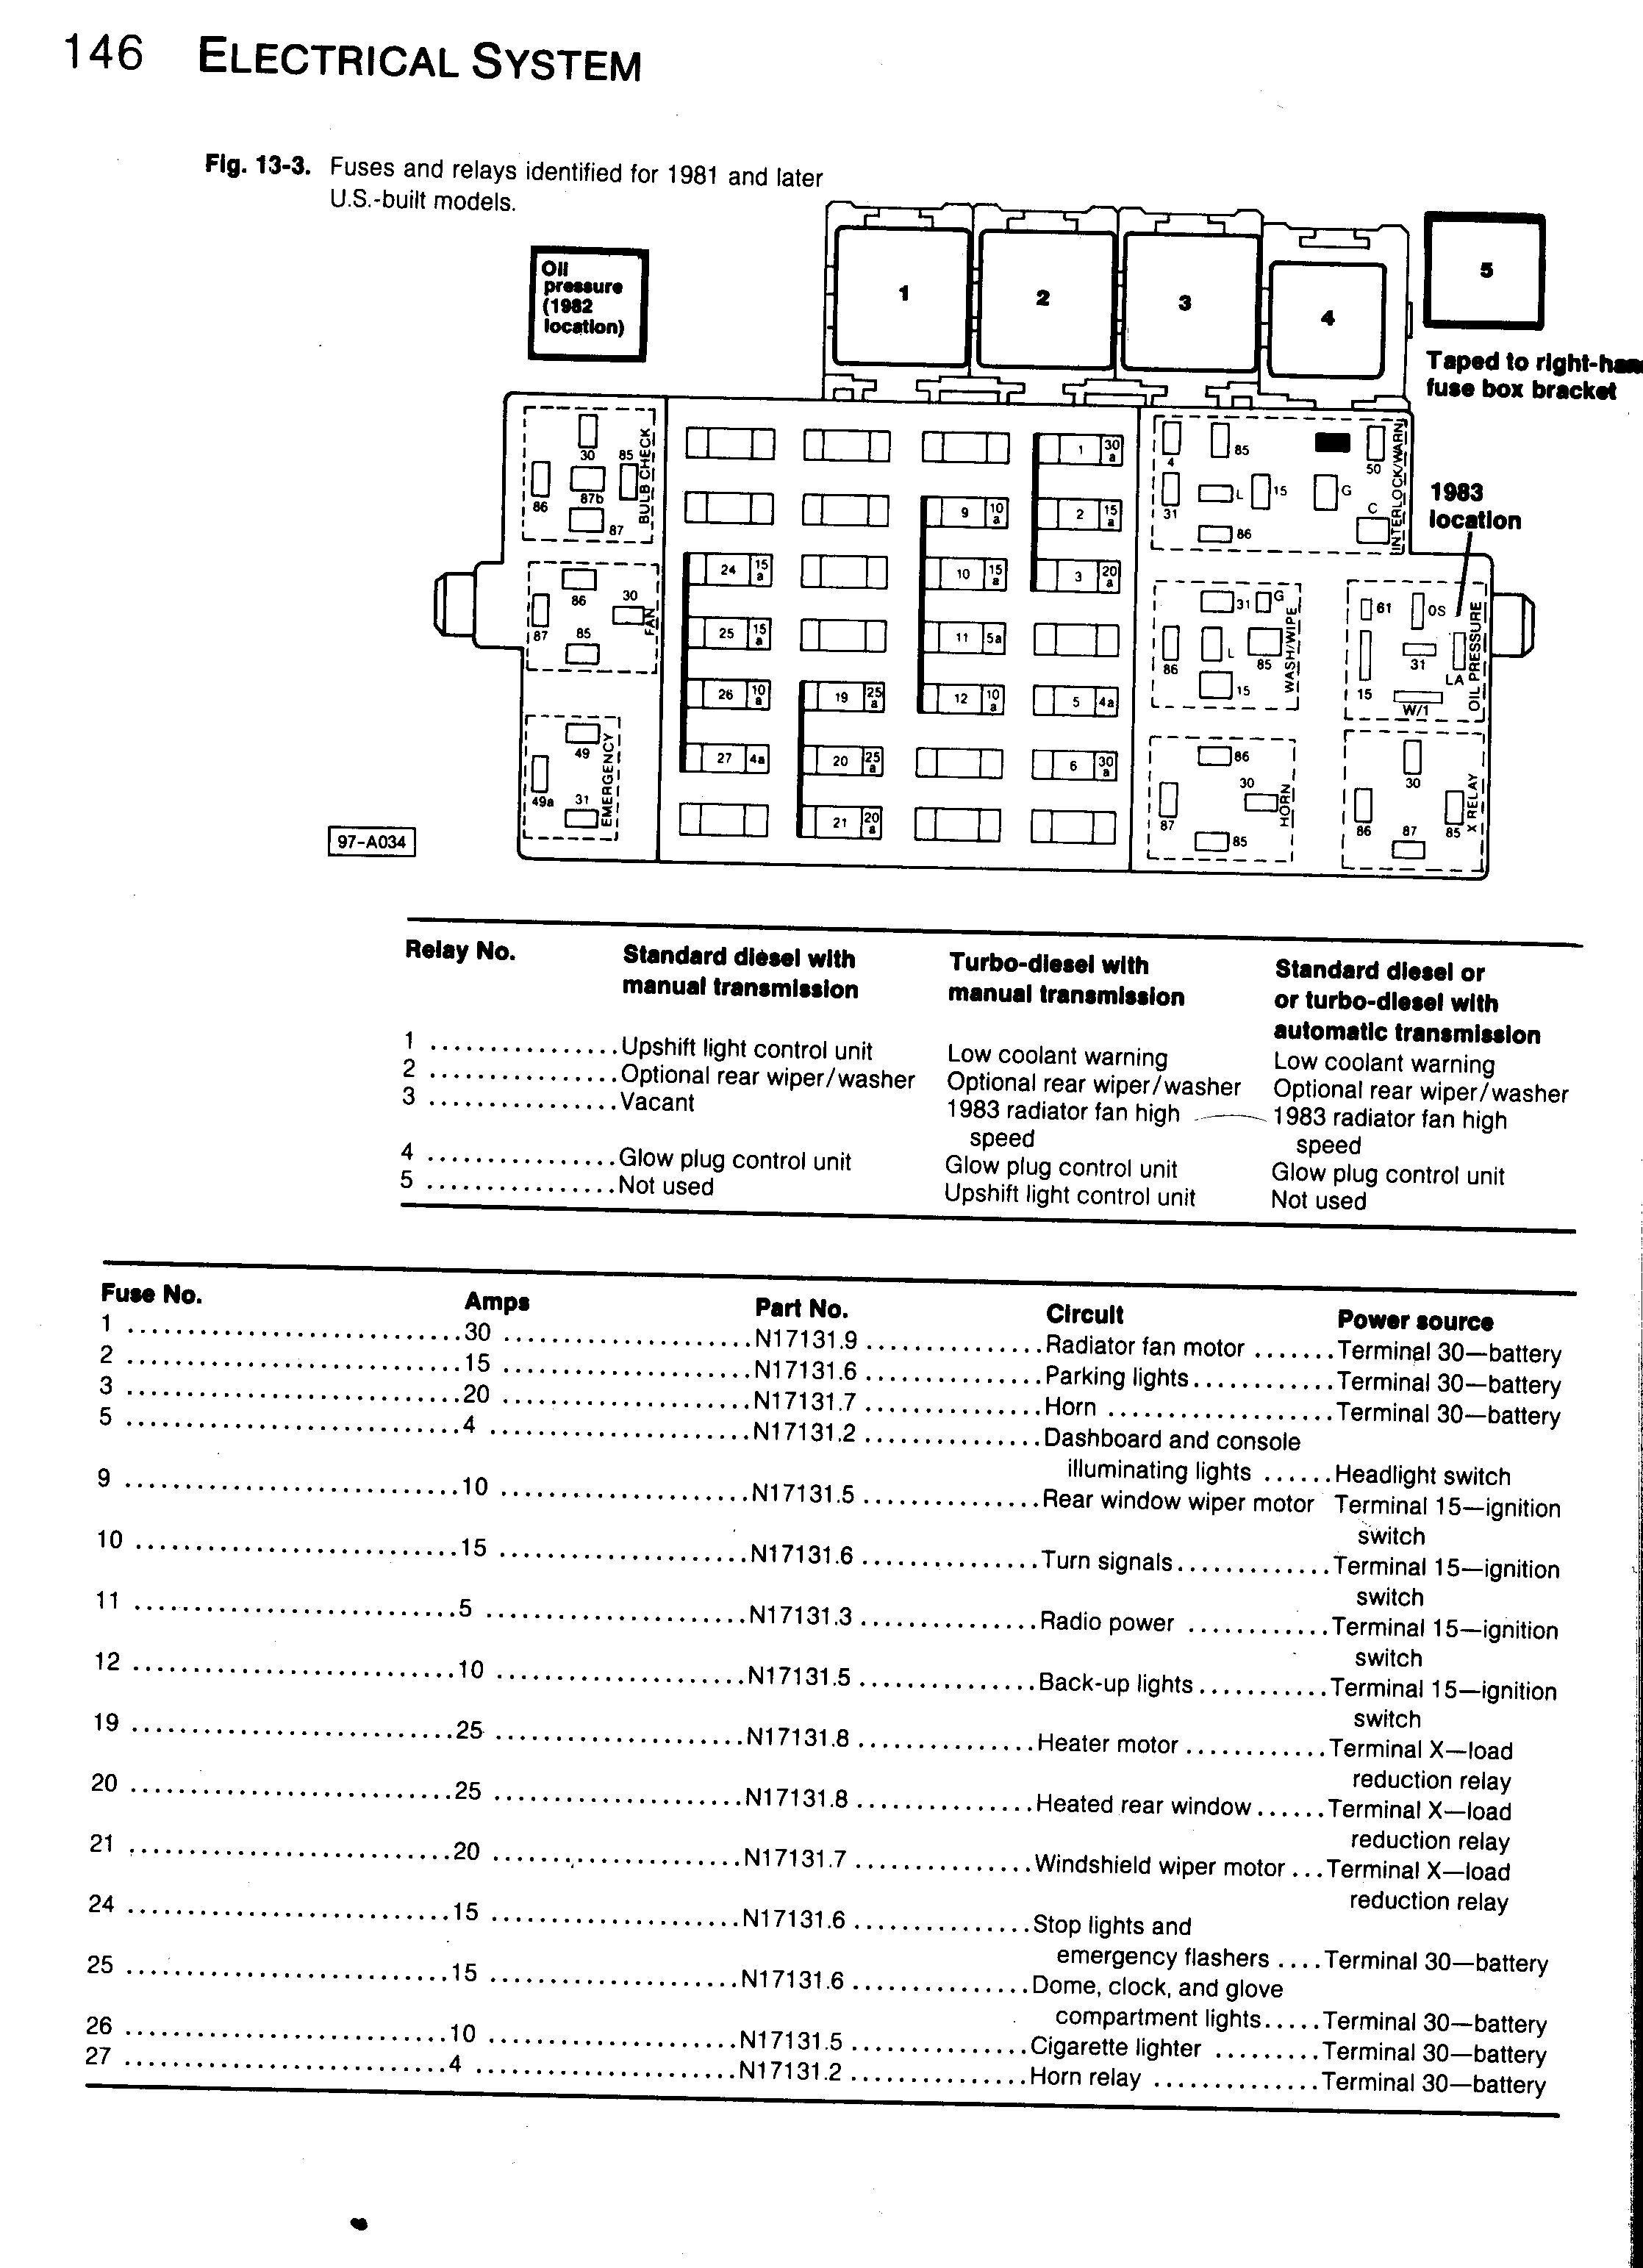 63 vw fuse diagram expert schematics diagram rh atcobennettrecoveries com  1998 VW Cabrio Fuse Diagram VW Atlas Fuse Diagram